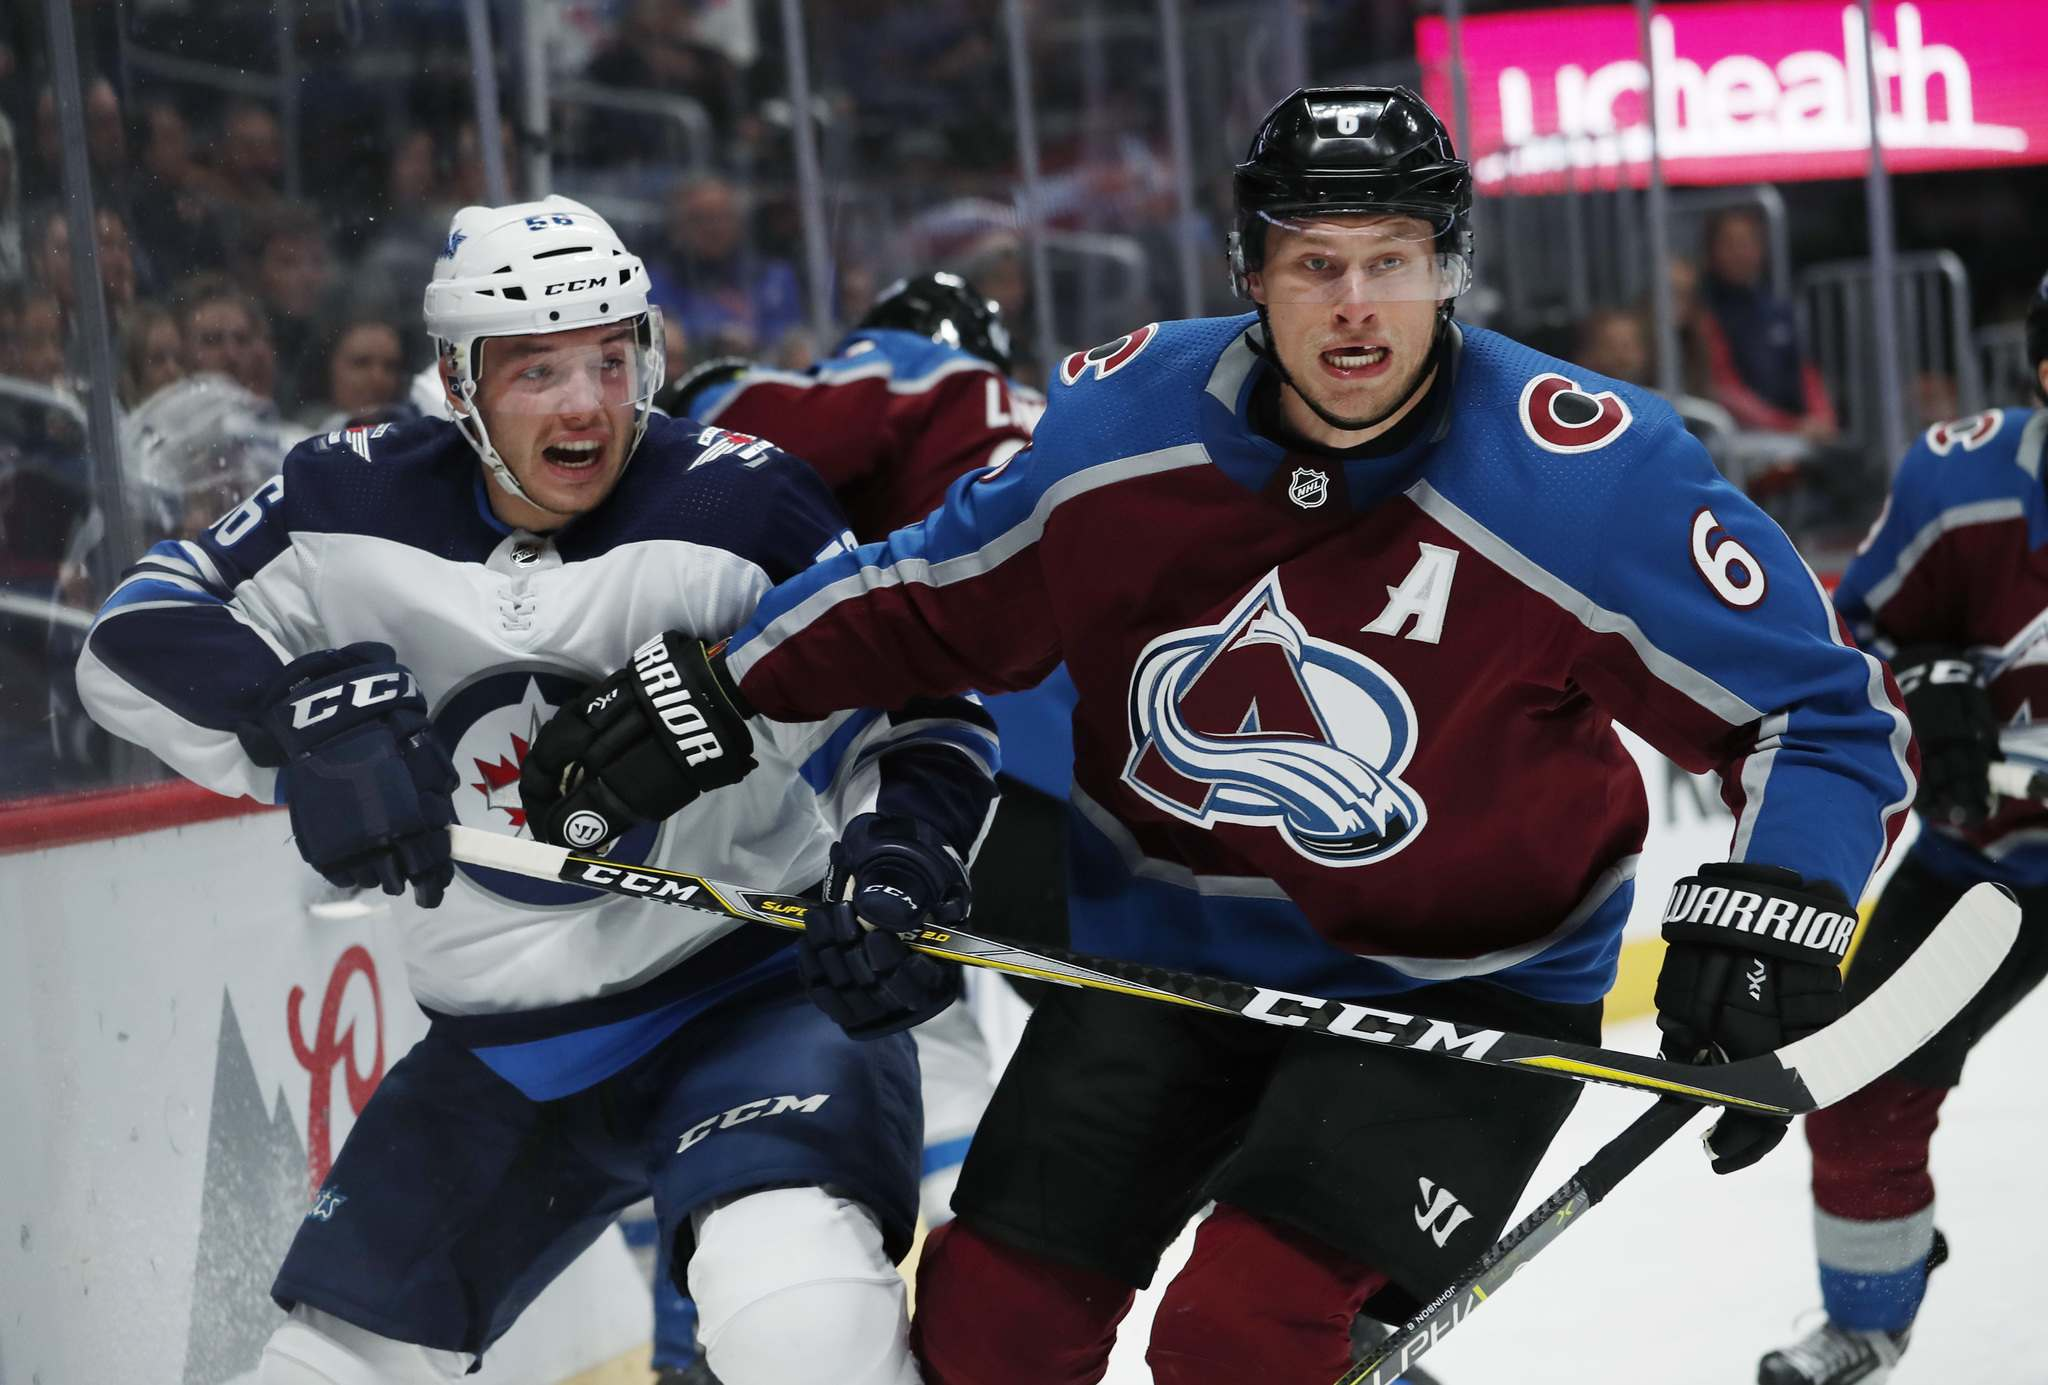 <p>Colorado Avalanche defenseman Erik Johnson, right, checks Winnipeg Jets center Marko Dano, of Austria, as they pursue the puck in the second period of an NHL hockey game Tuesday, Jan. 2, 2018, in Denver. </p>